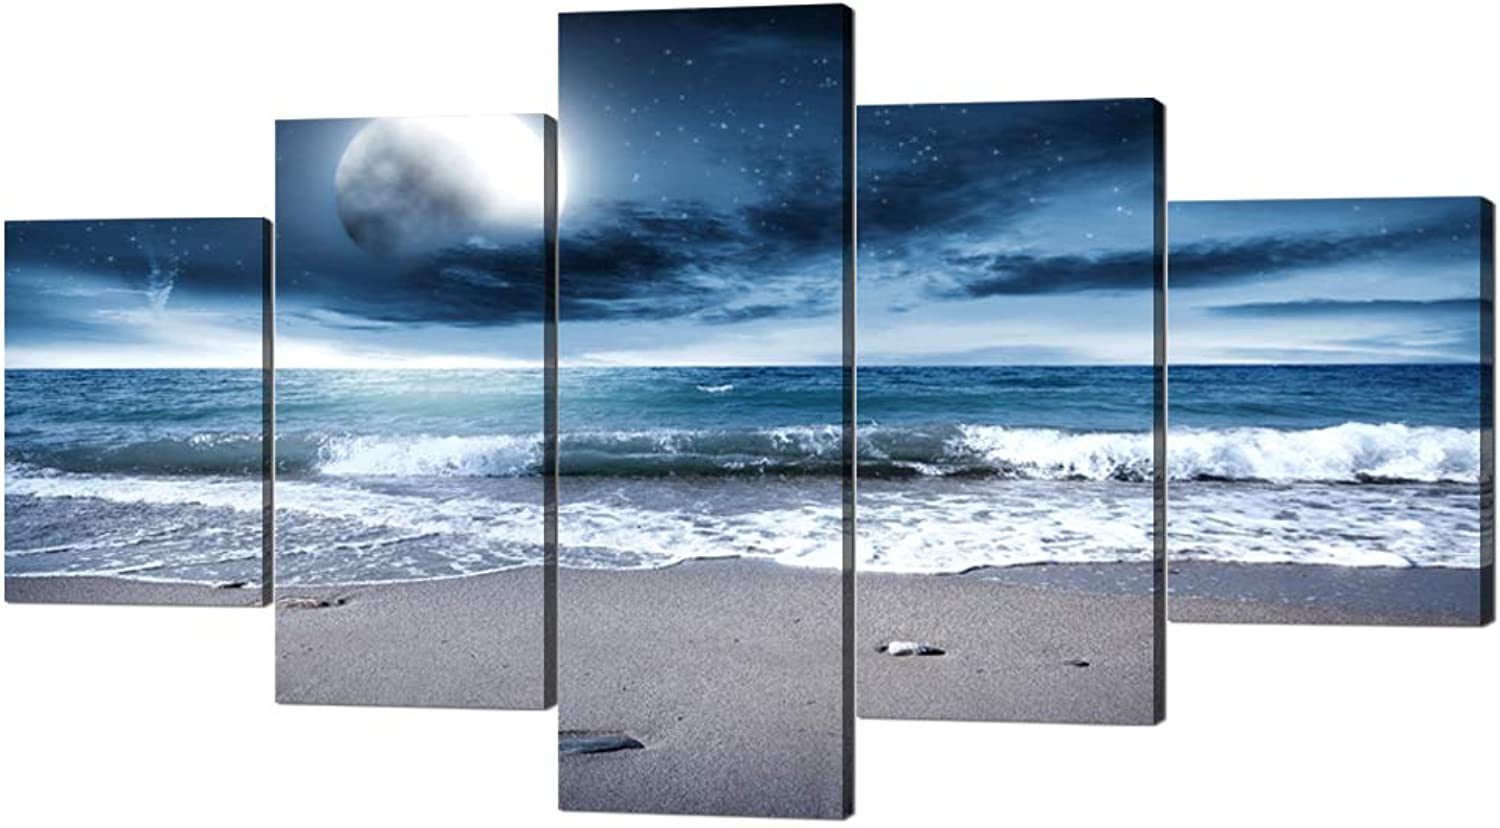 Yatsen Bridge 5 Panels Modern Ocean Artwork Wall Decor Full Moon Night Ocean Prints and Posters Stretched by Wooden Frame Ocean Picture for Living Room Bedroom Decor - 60''W x 32''H